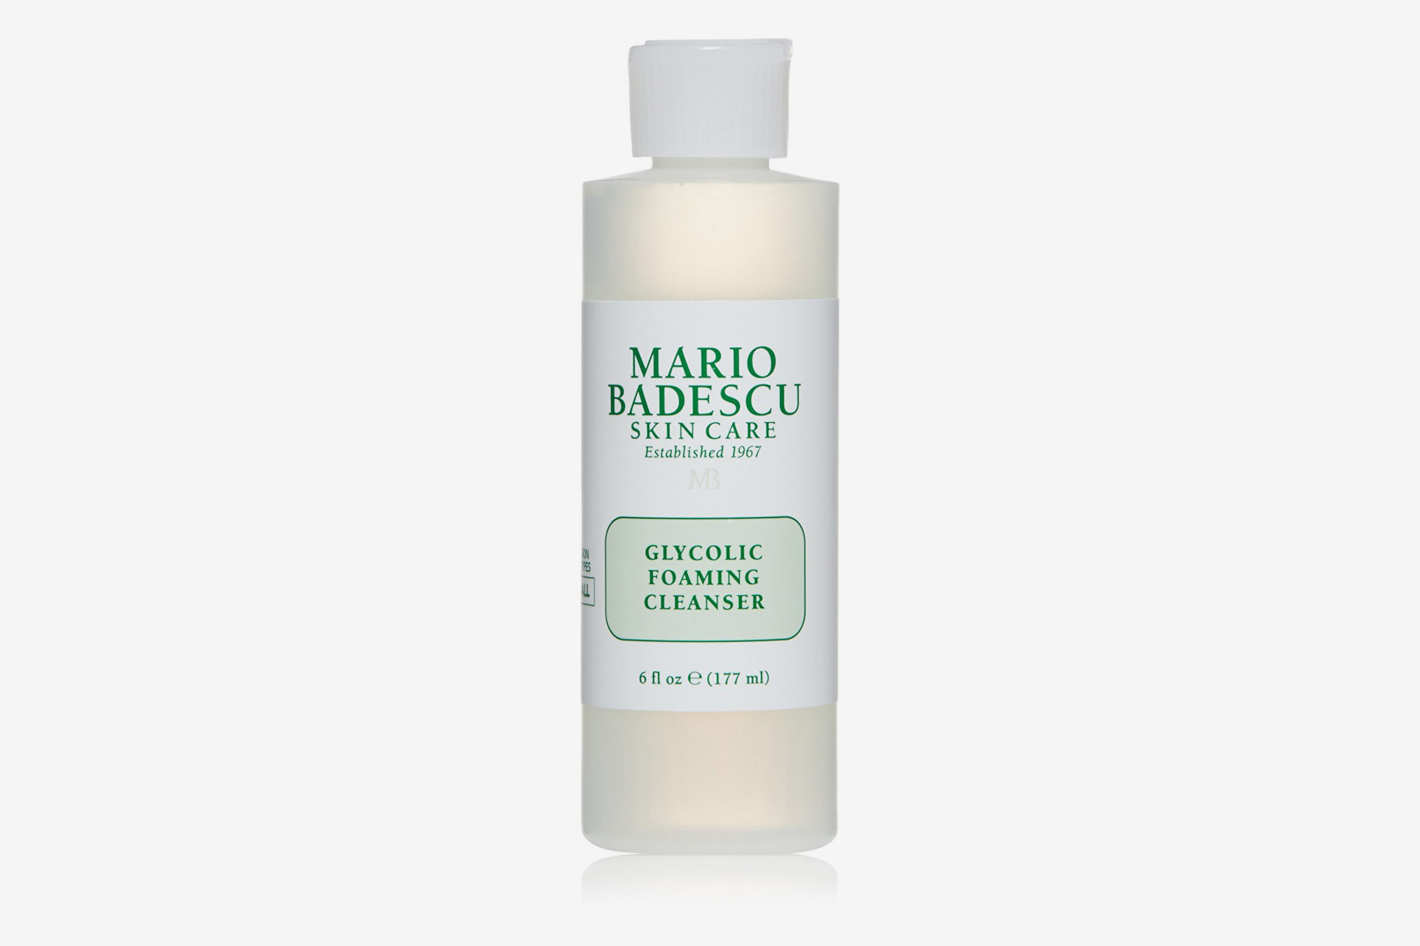 Mario Badescu Glycolic Foaming Cleanser, 6 fl. oz.